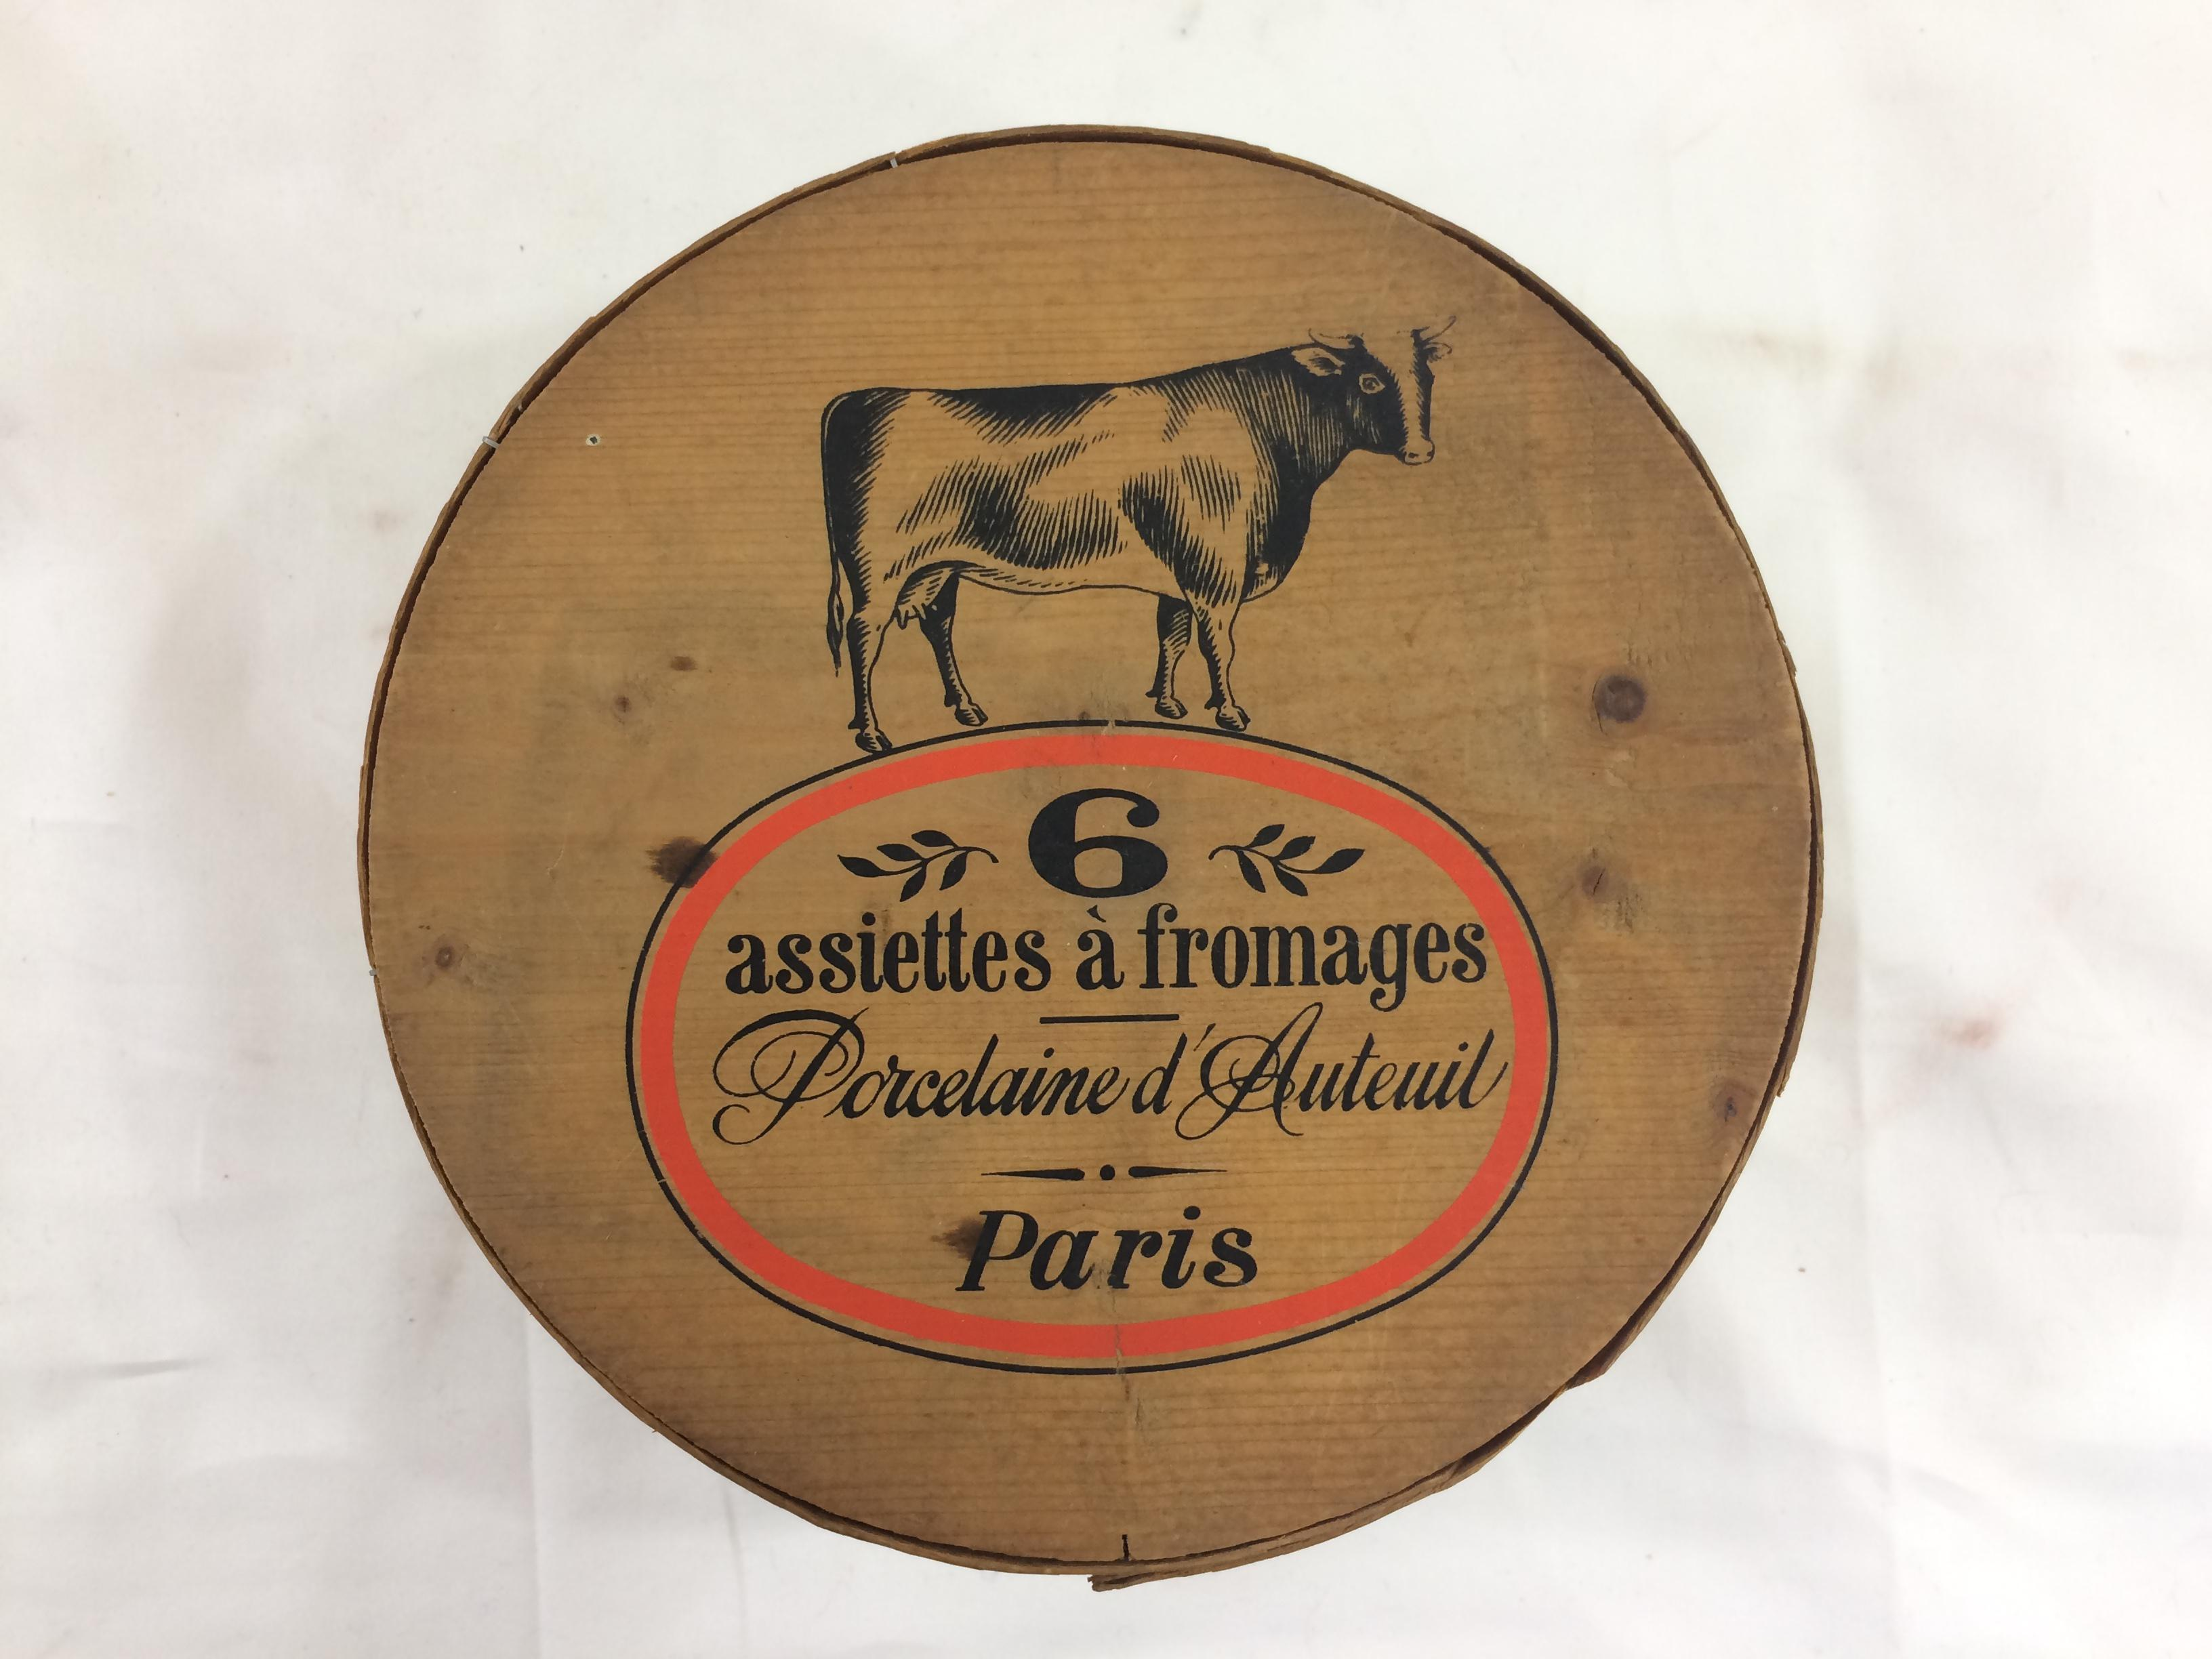 French Cheese Plates - Set of 6 - Image 2 of 11  sc 1 st  Chairish & French Cheese Plates - Set of 6 | Chairish